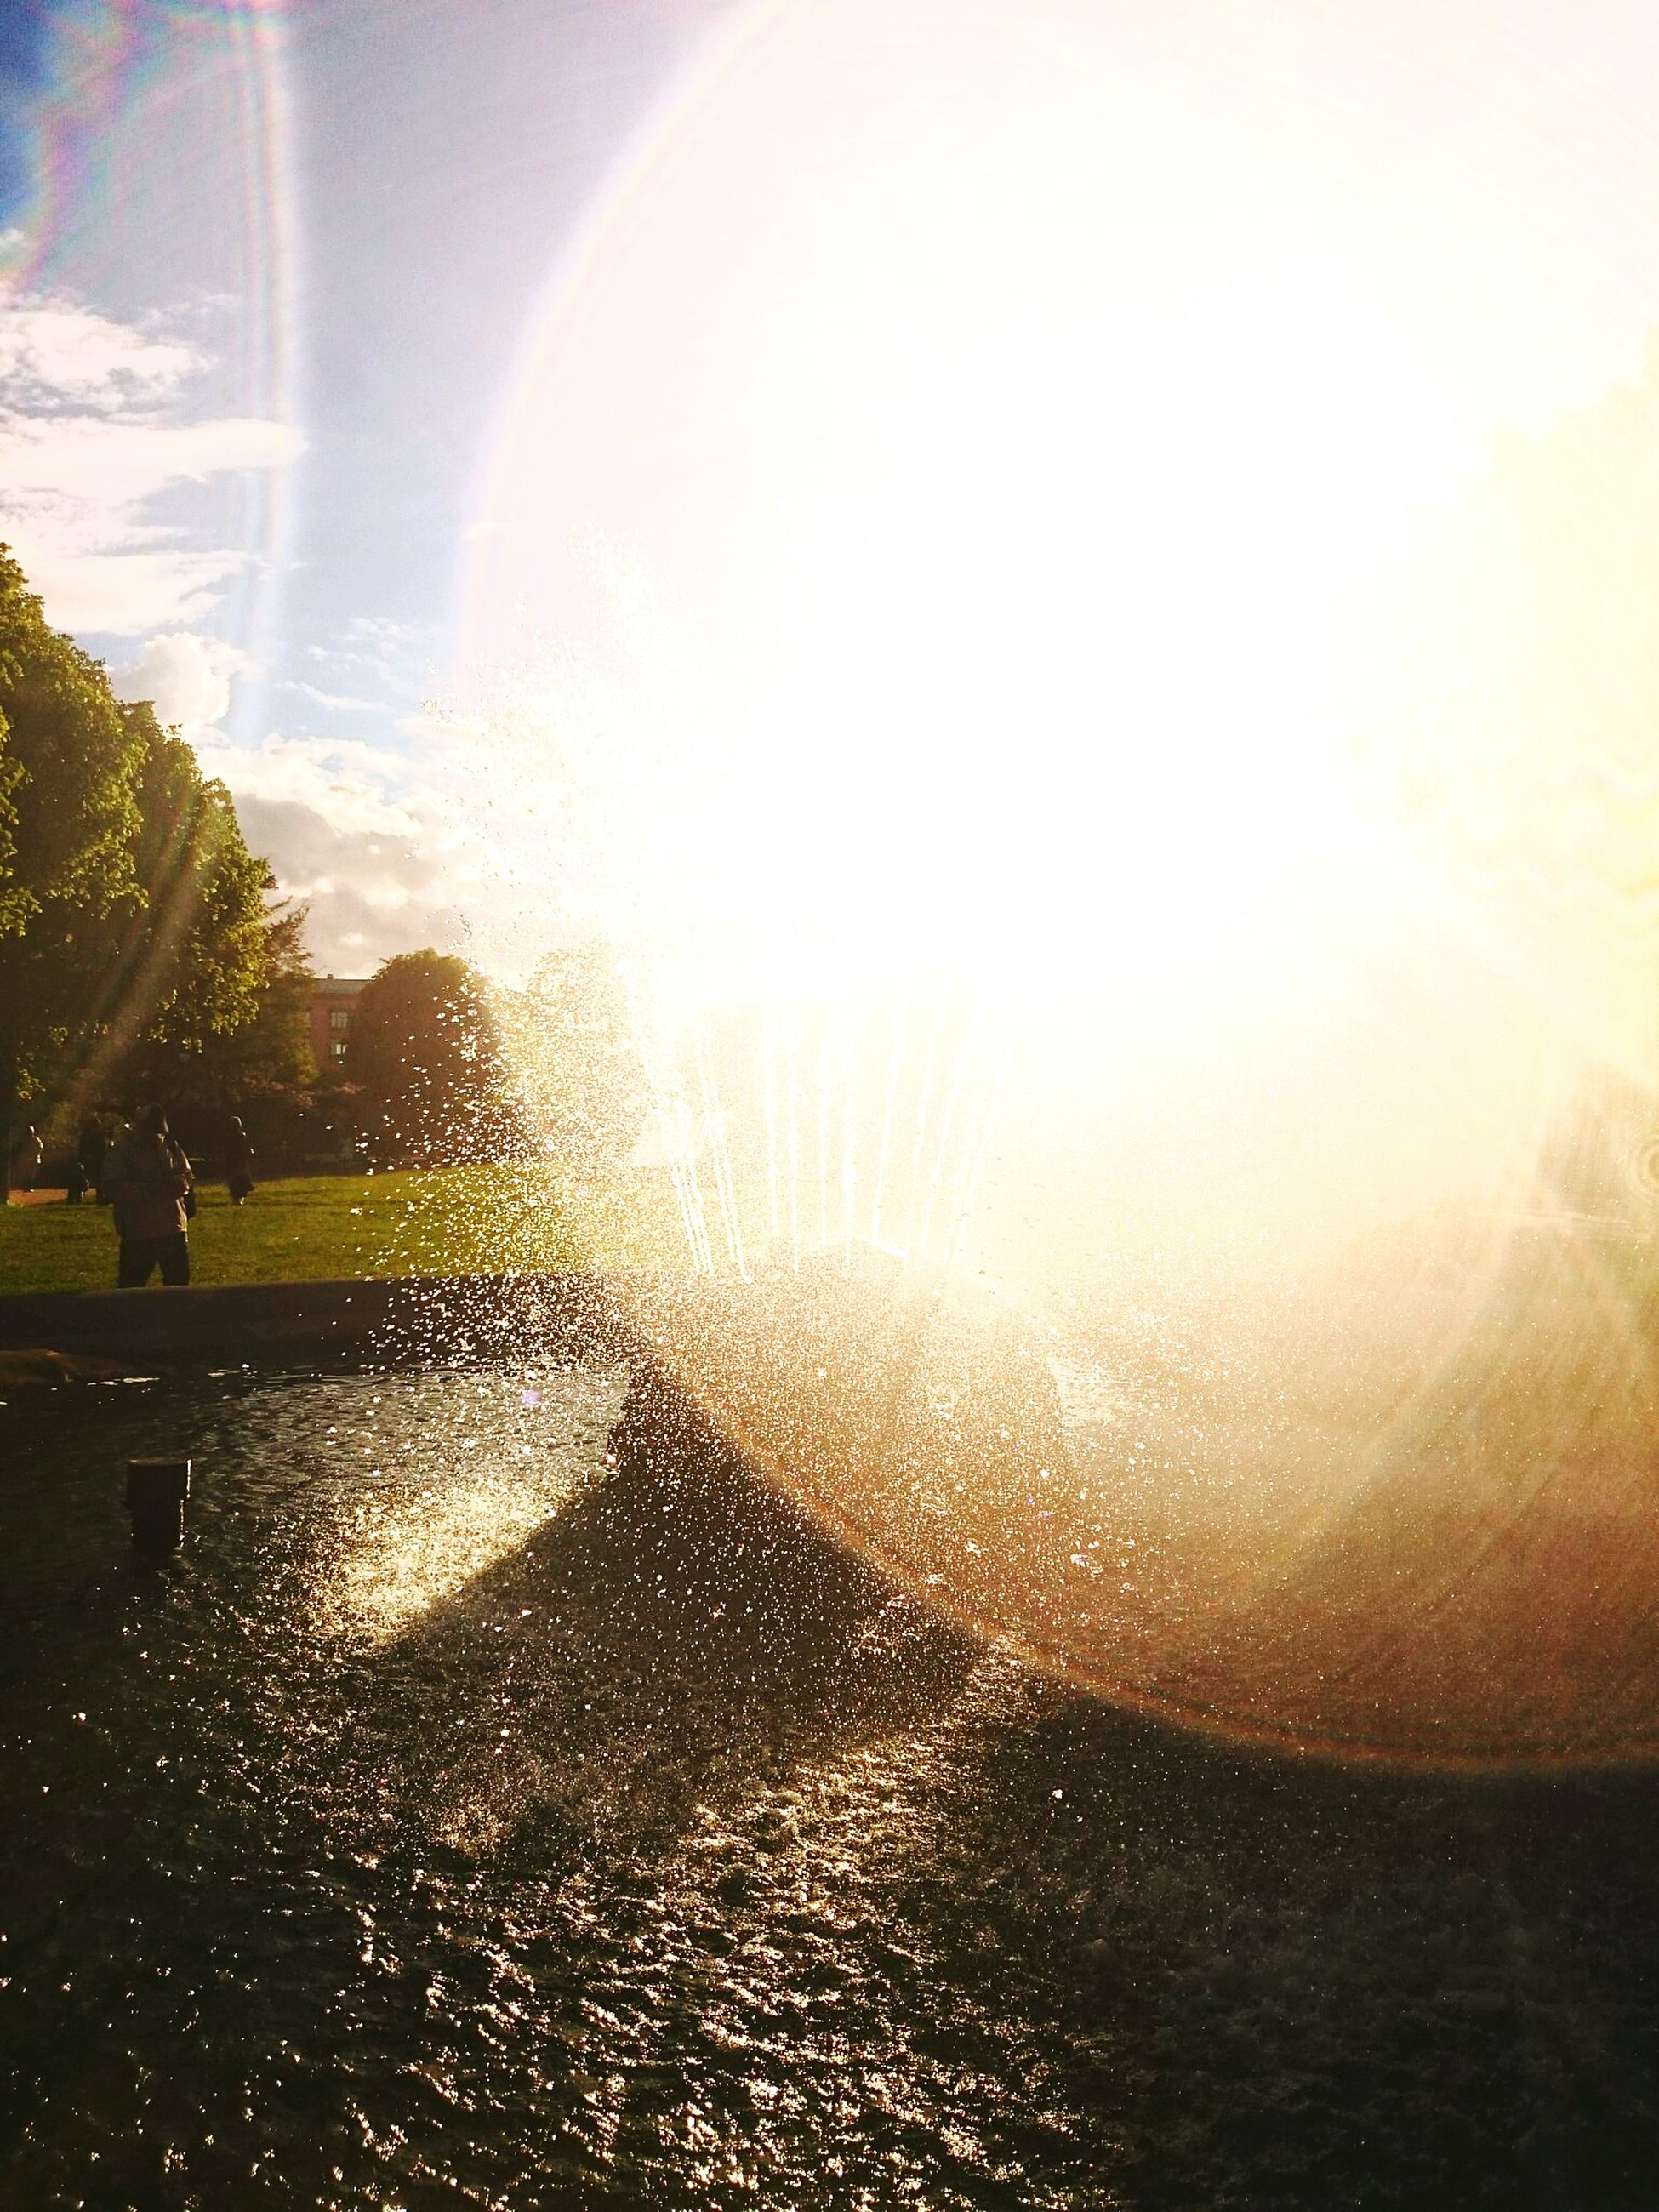 sun, water, sunbeam, lens flare, sunlight, sky, reflection, transparent, nature, glass - material, beauty in nature, drop, sunset, bright, sea, sunny, scenics, one person, tree, shiny